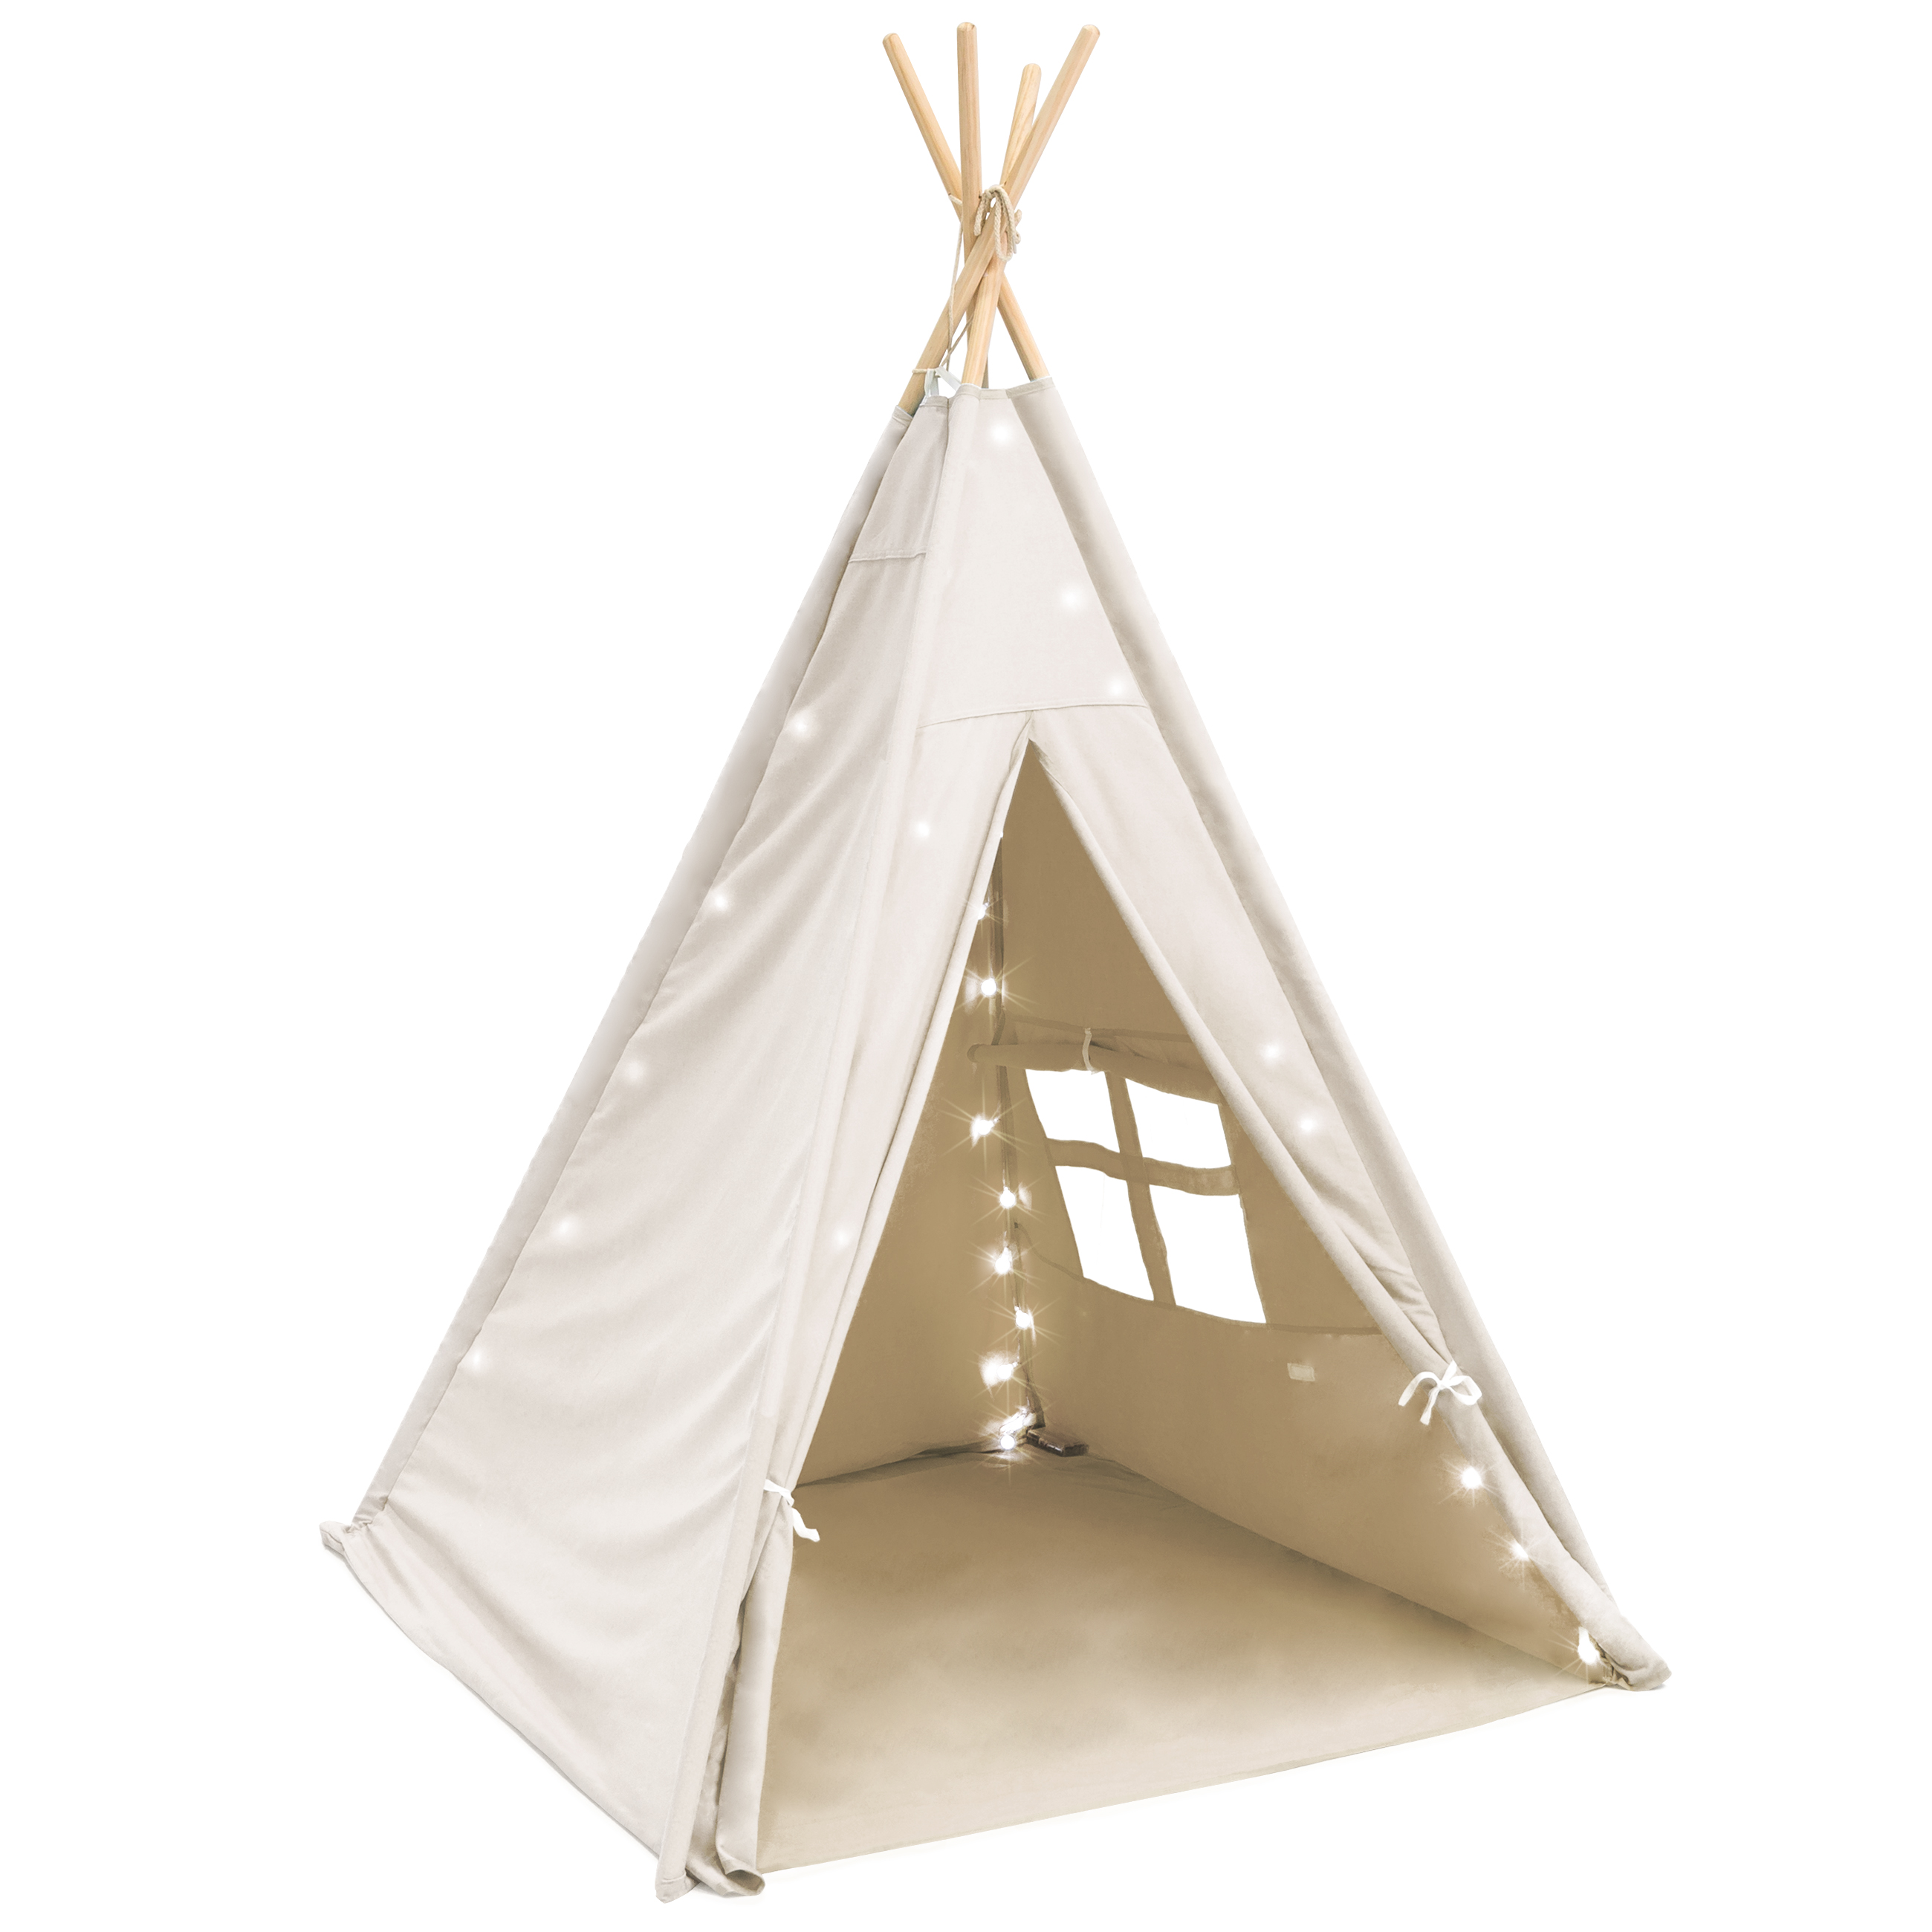 Best Choice Products 6ft Light Up Teepee Play Tent Kids Indian Canvas Playhouse Dome w  Carrying Bag White by Best Choice Products